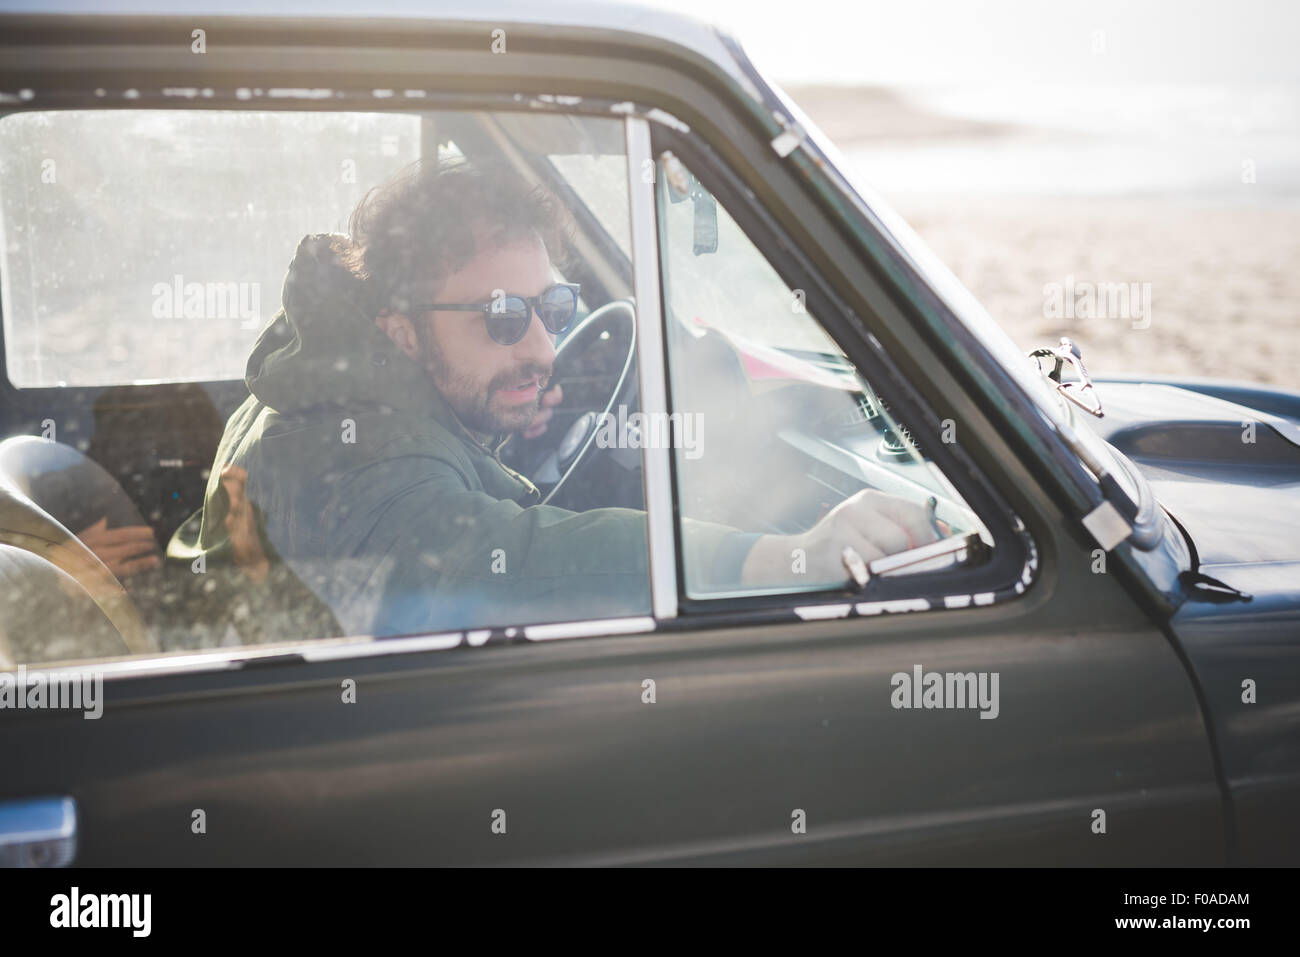 Man in parked vintage car lat beach fastening window - Stock Image